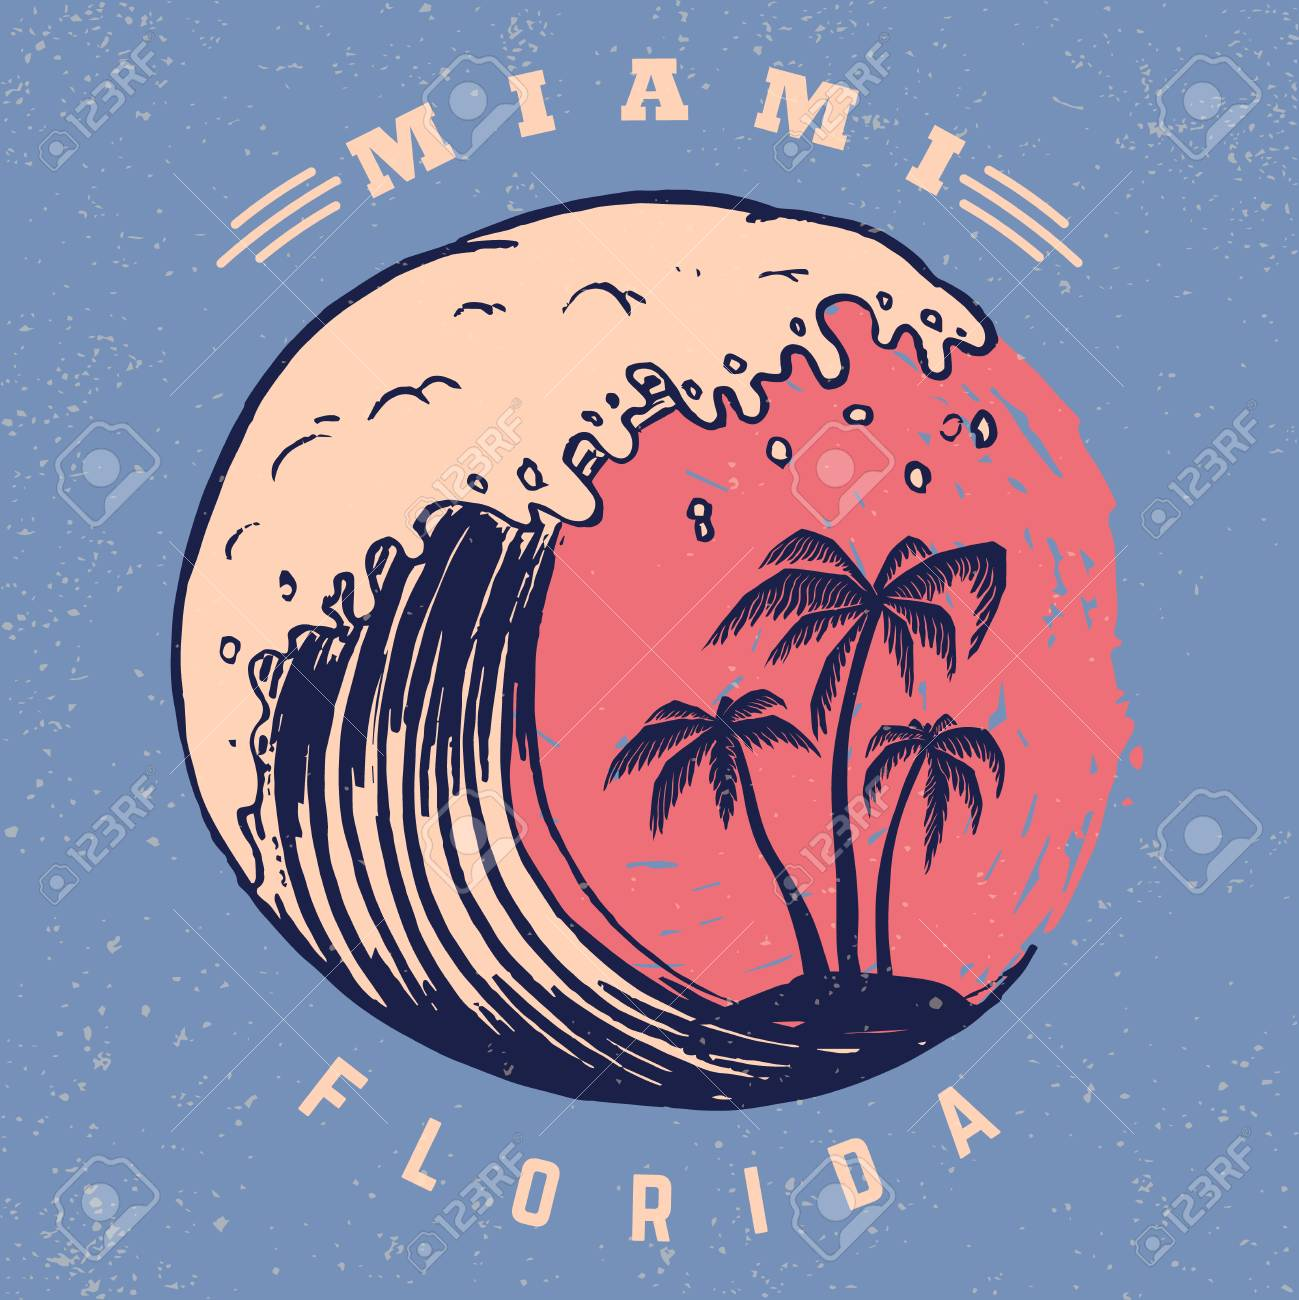 Miami. Poster template with lettering and palms. Vector image - 105948371